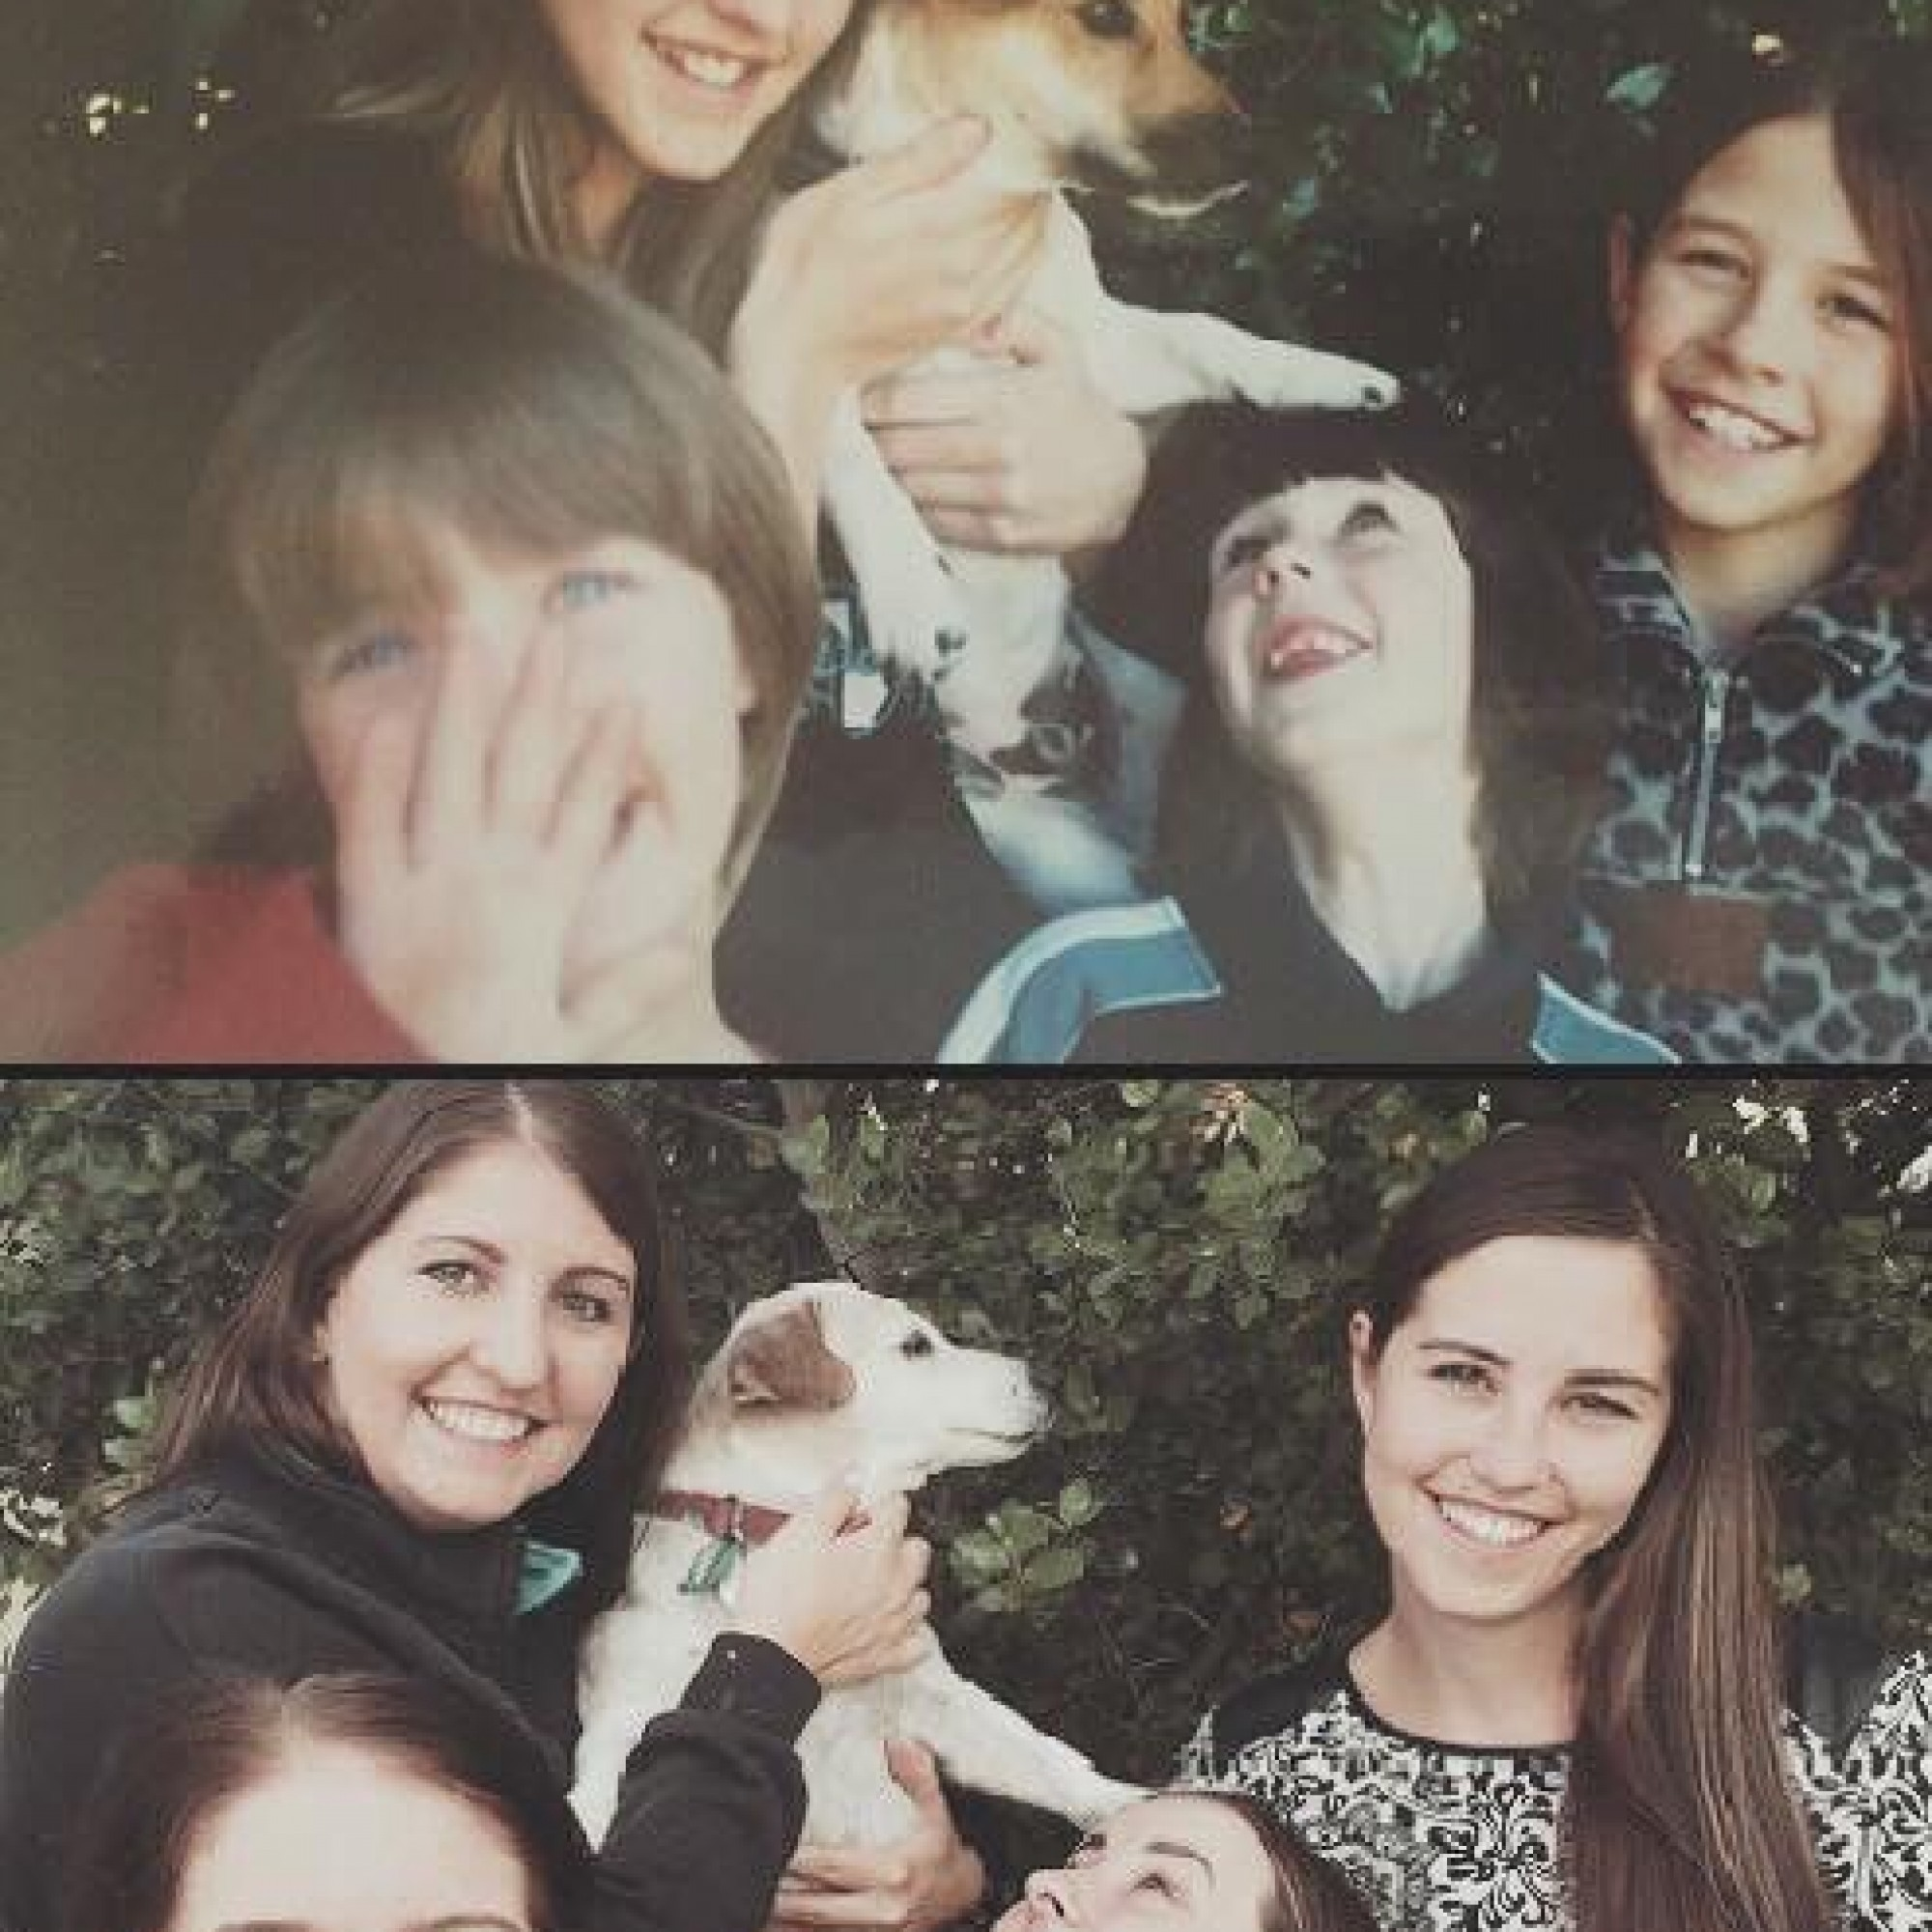 These sisters recreated a touching photo with their pet dog before he died